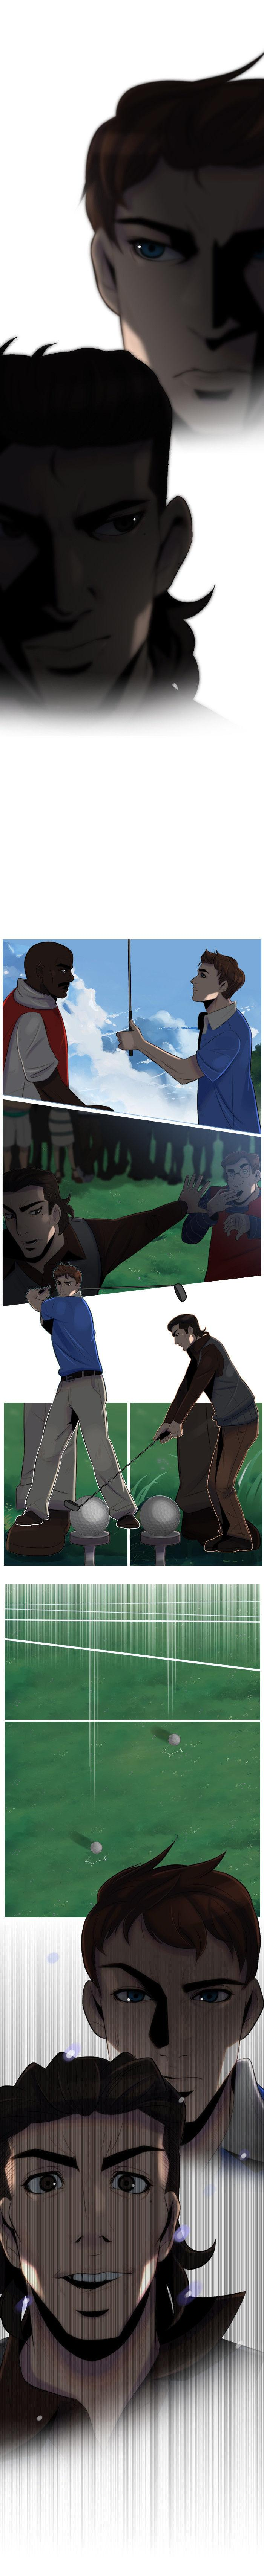 Golf Star - Chapter 12